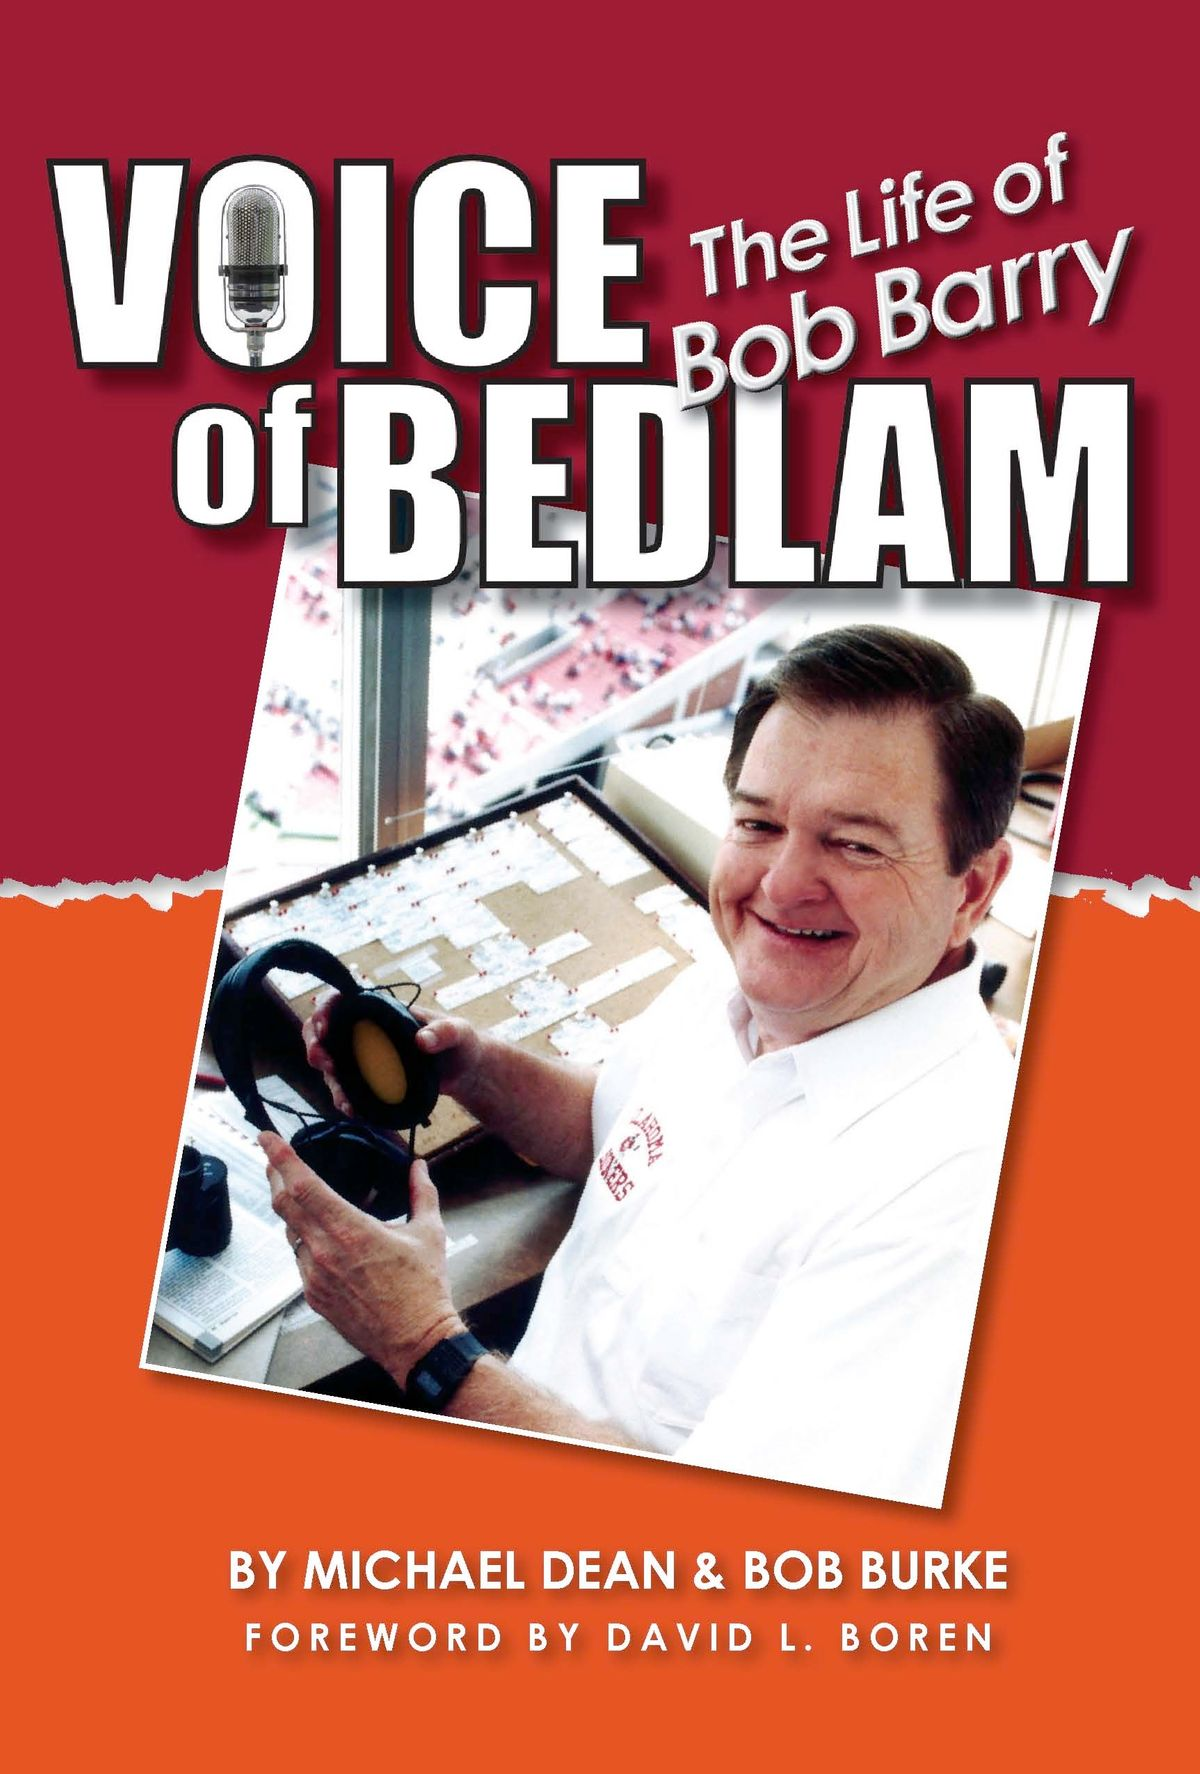 VOICE OF BEDLAM.JPG